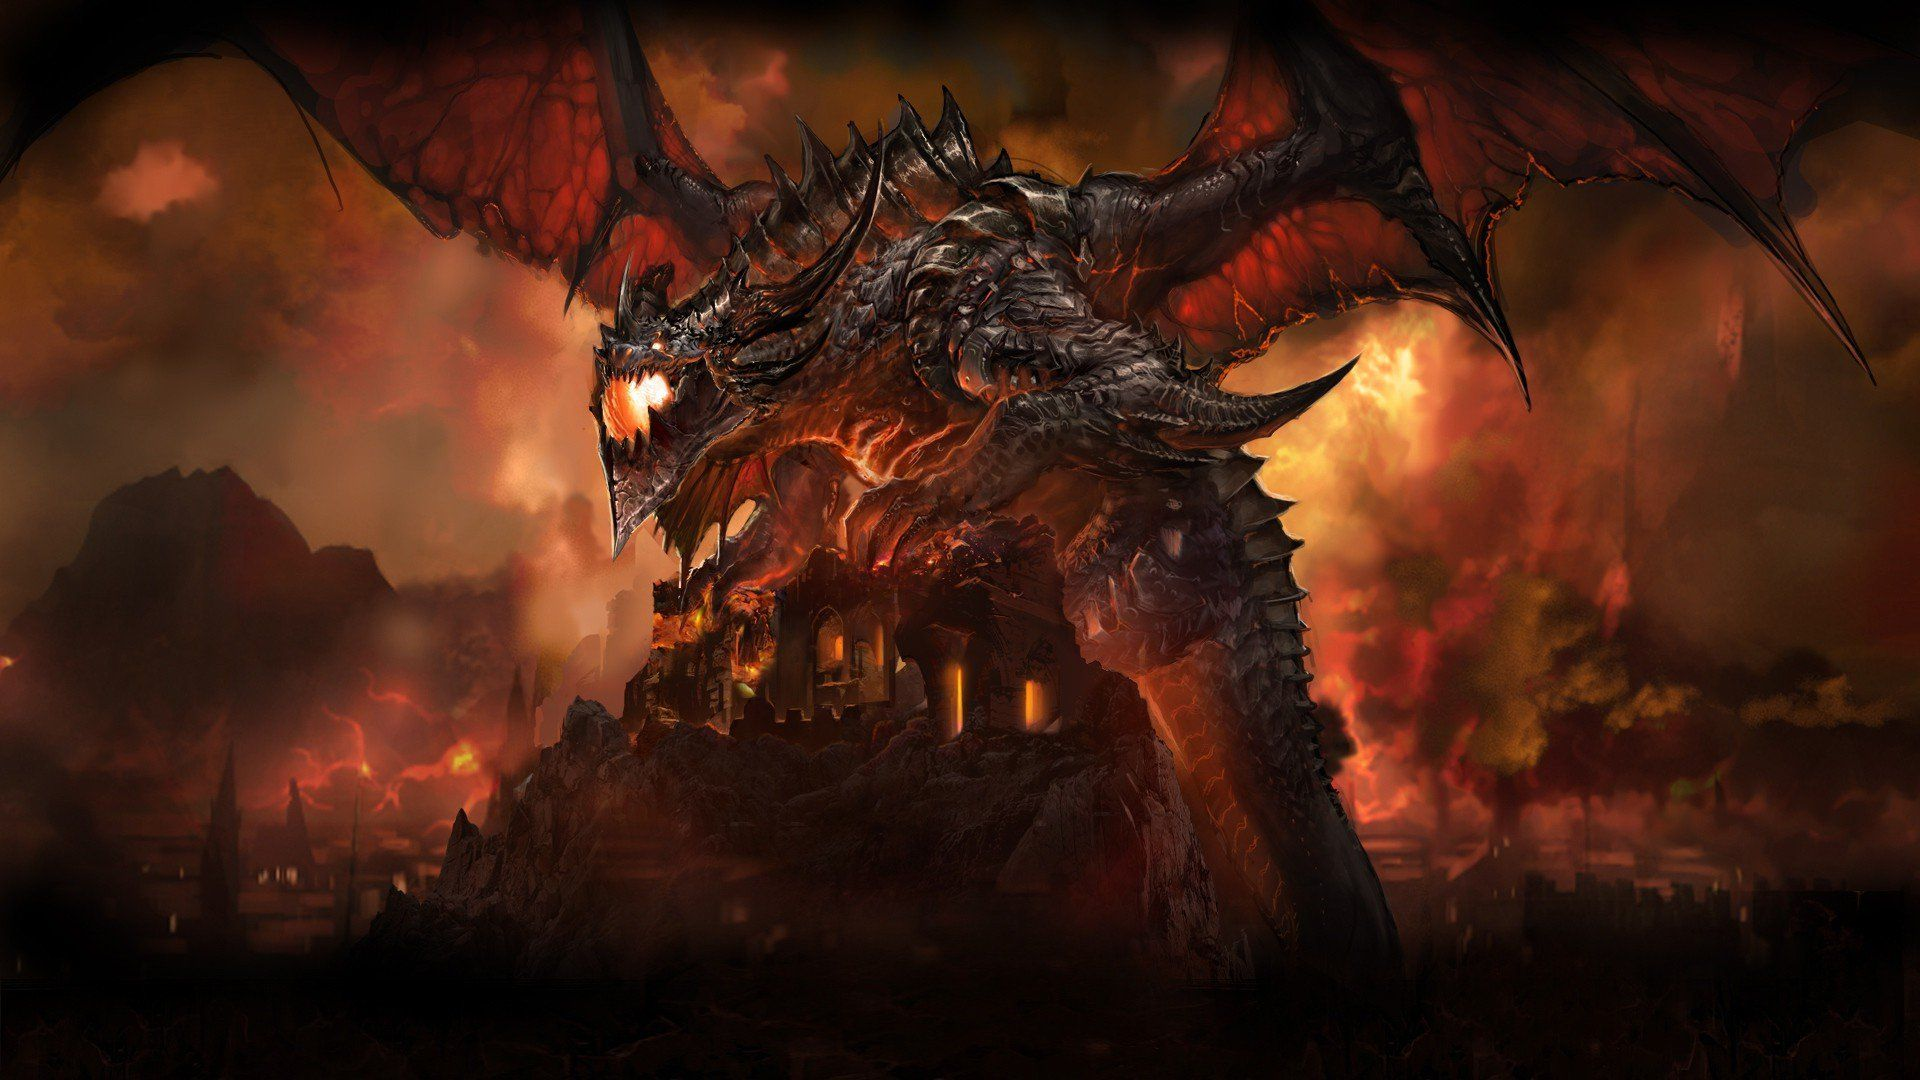 World of Warcraft Dragon Wallpapers - Top Free World of ...